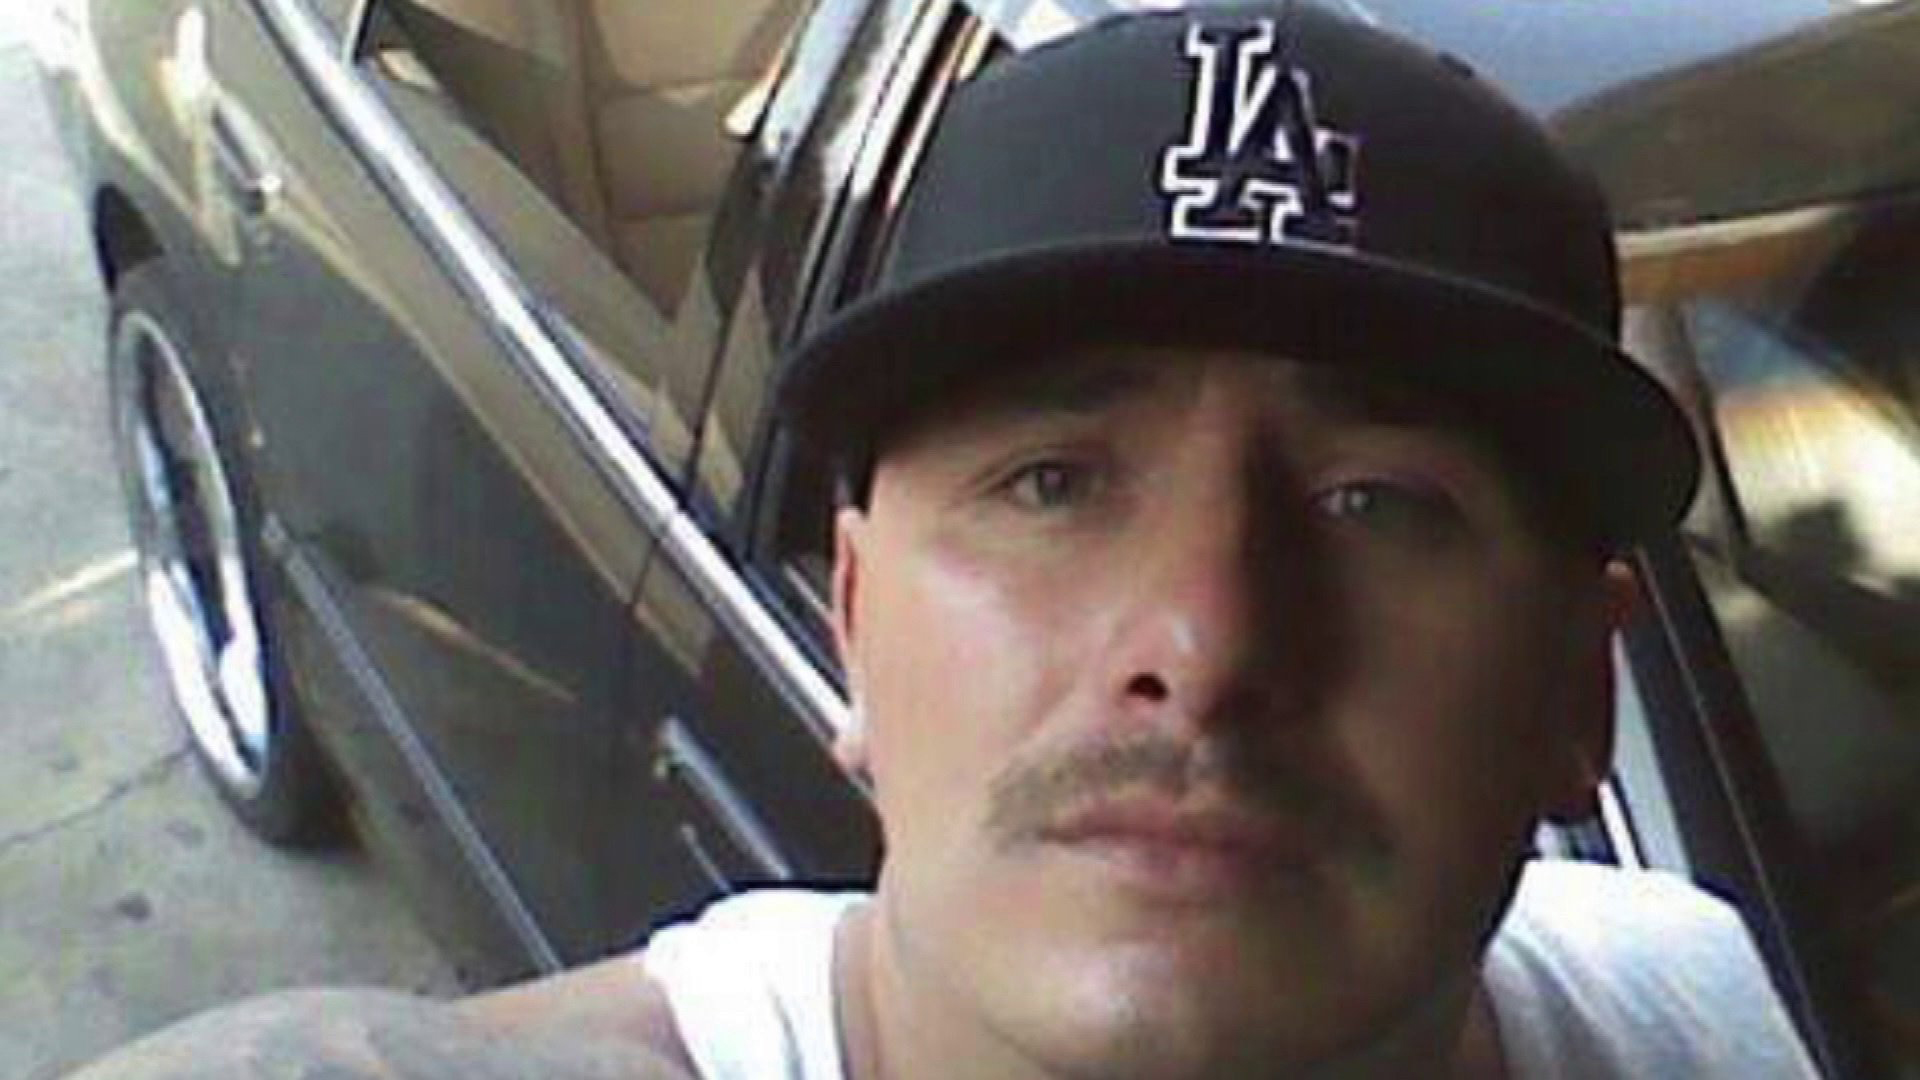 Jose is seen in a photo provided by family members to KTLA.